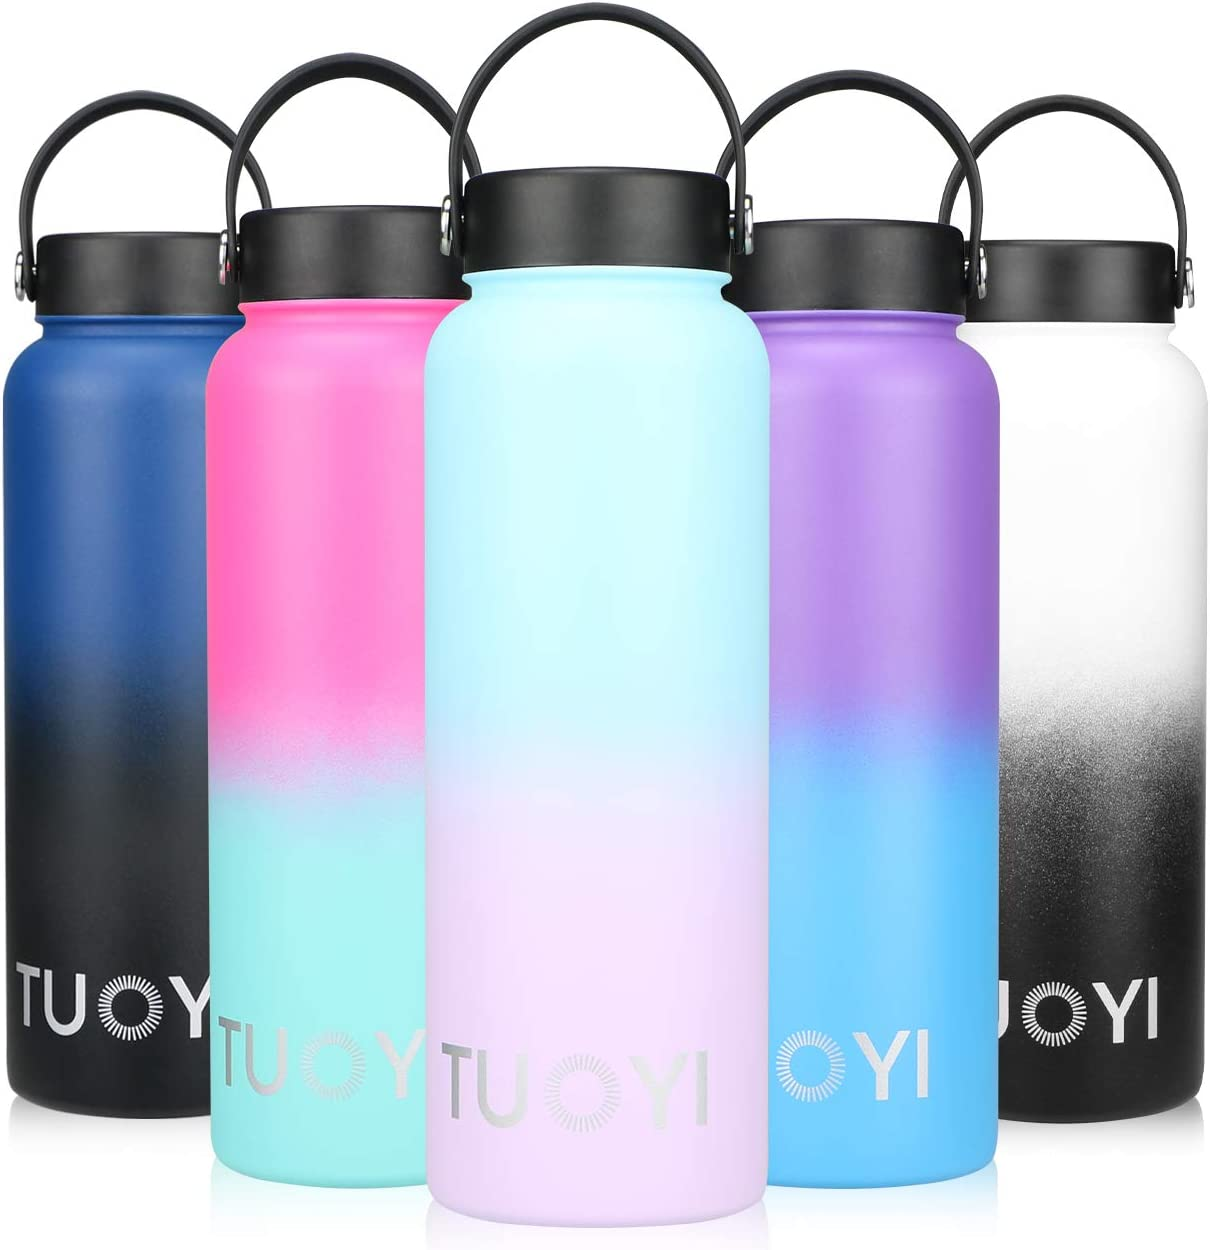 TUOYI Insulated Water Bottle 18oz 40oz Double Vacuum Stainless Steel Portable Sports Water Bottle with Straw Keeps Water Stay Cold for 24 Hours, Hot for 12 Hours